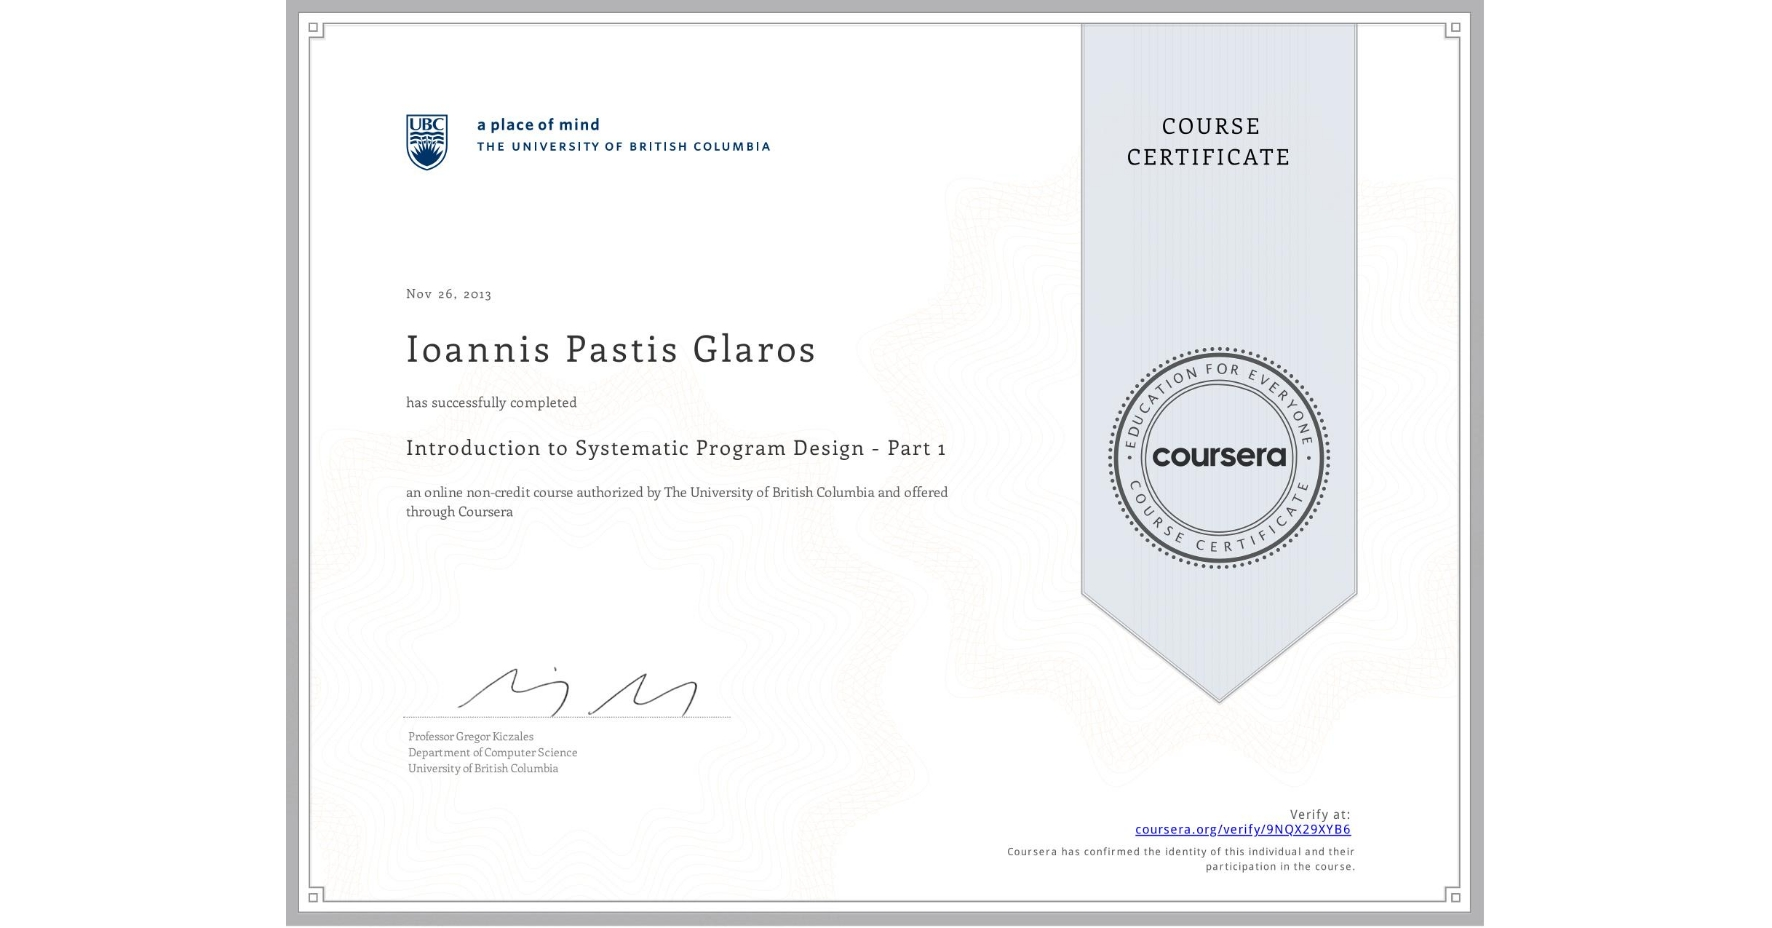 View certificate for Ioannis Pastis Glaros, Introduction to Systematic Program Design - Part 1, an online non-credit course authorized by The University of British Columbia and offered through Coursera